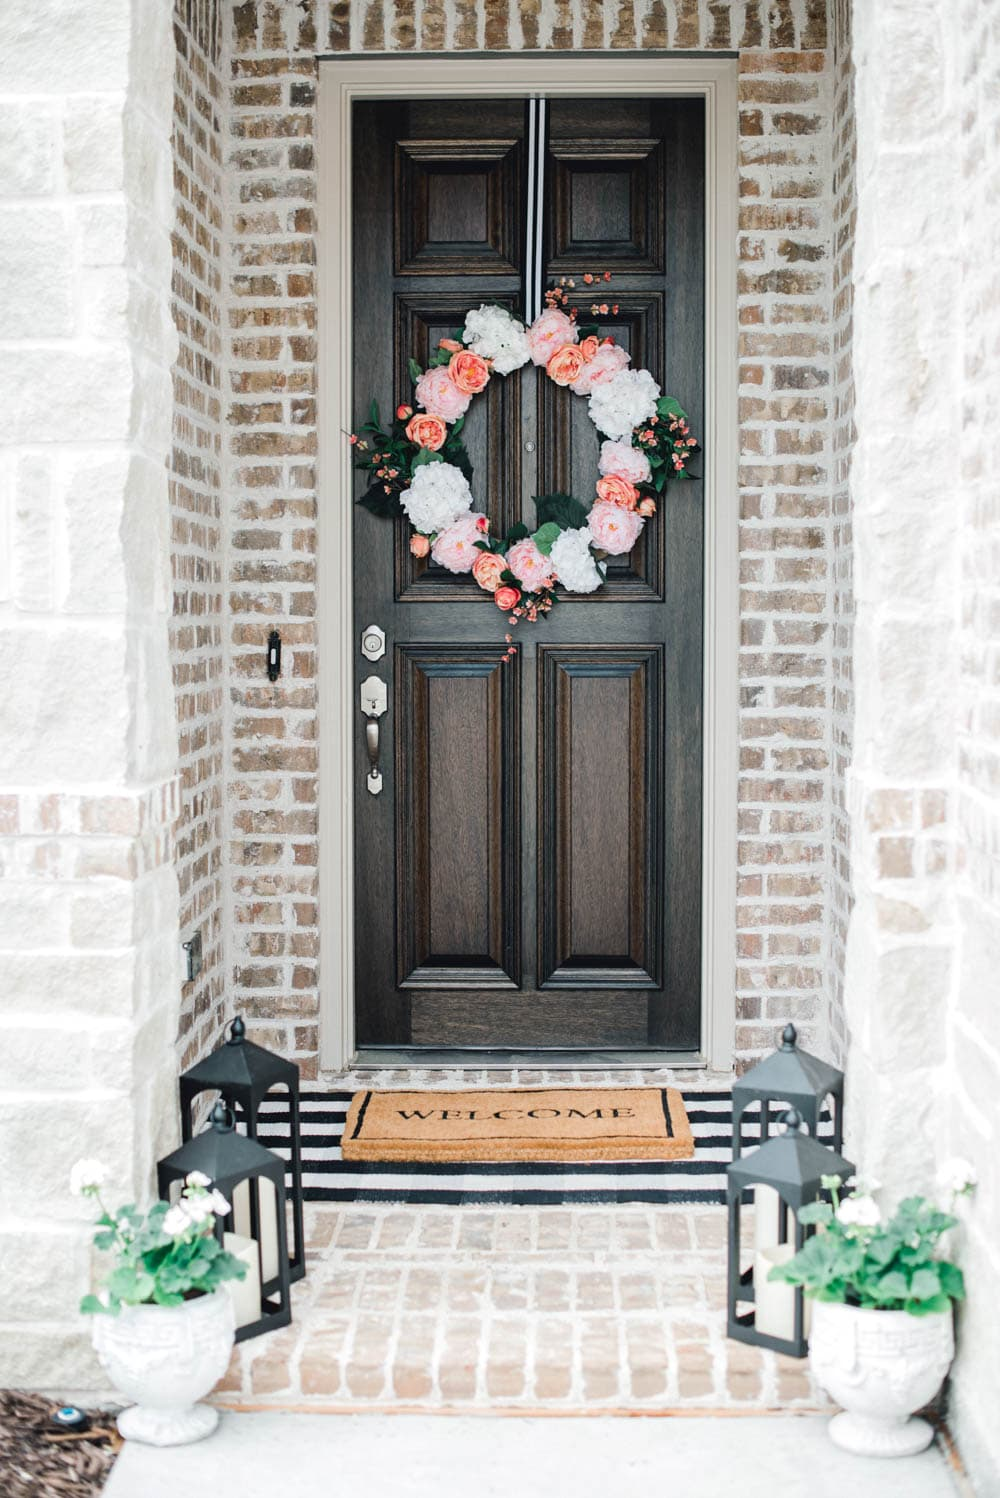 Freshen your porch up with a beautiful wreath! Love these tips on effortless spring decorating! #ABlissfulNest #spring #springideas